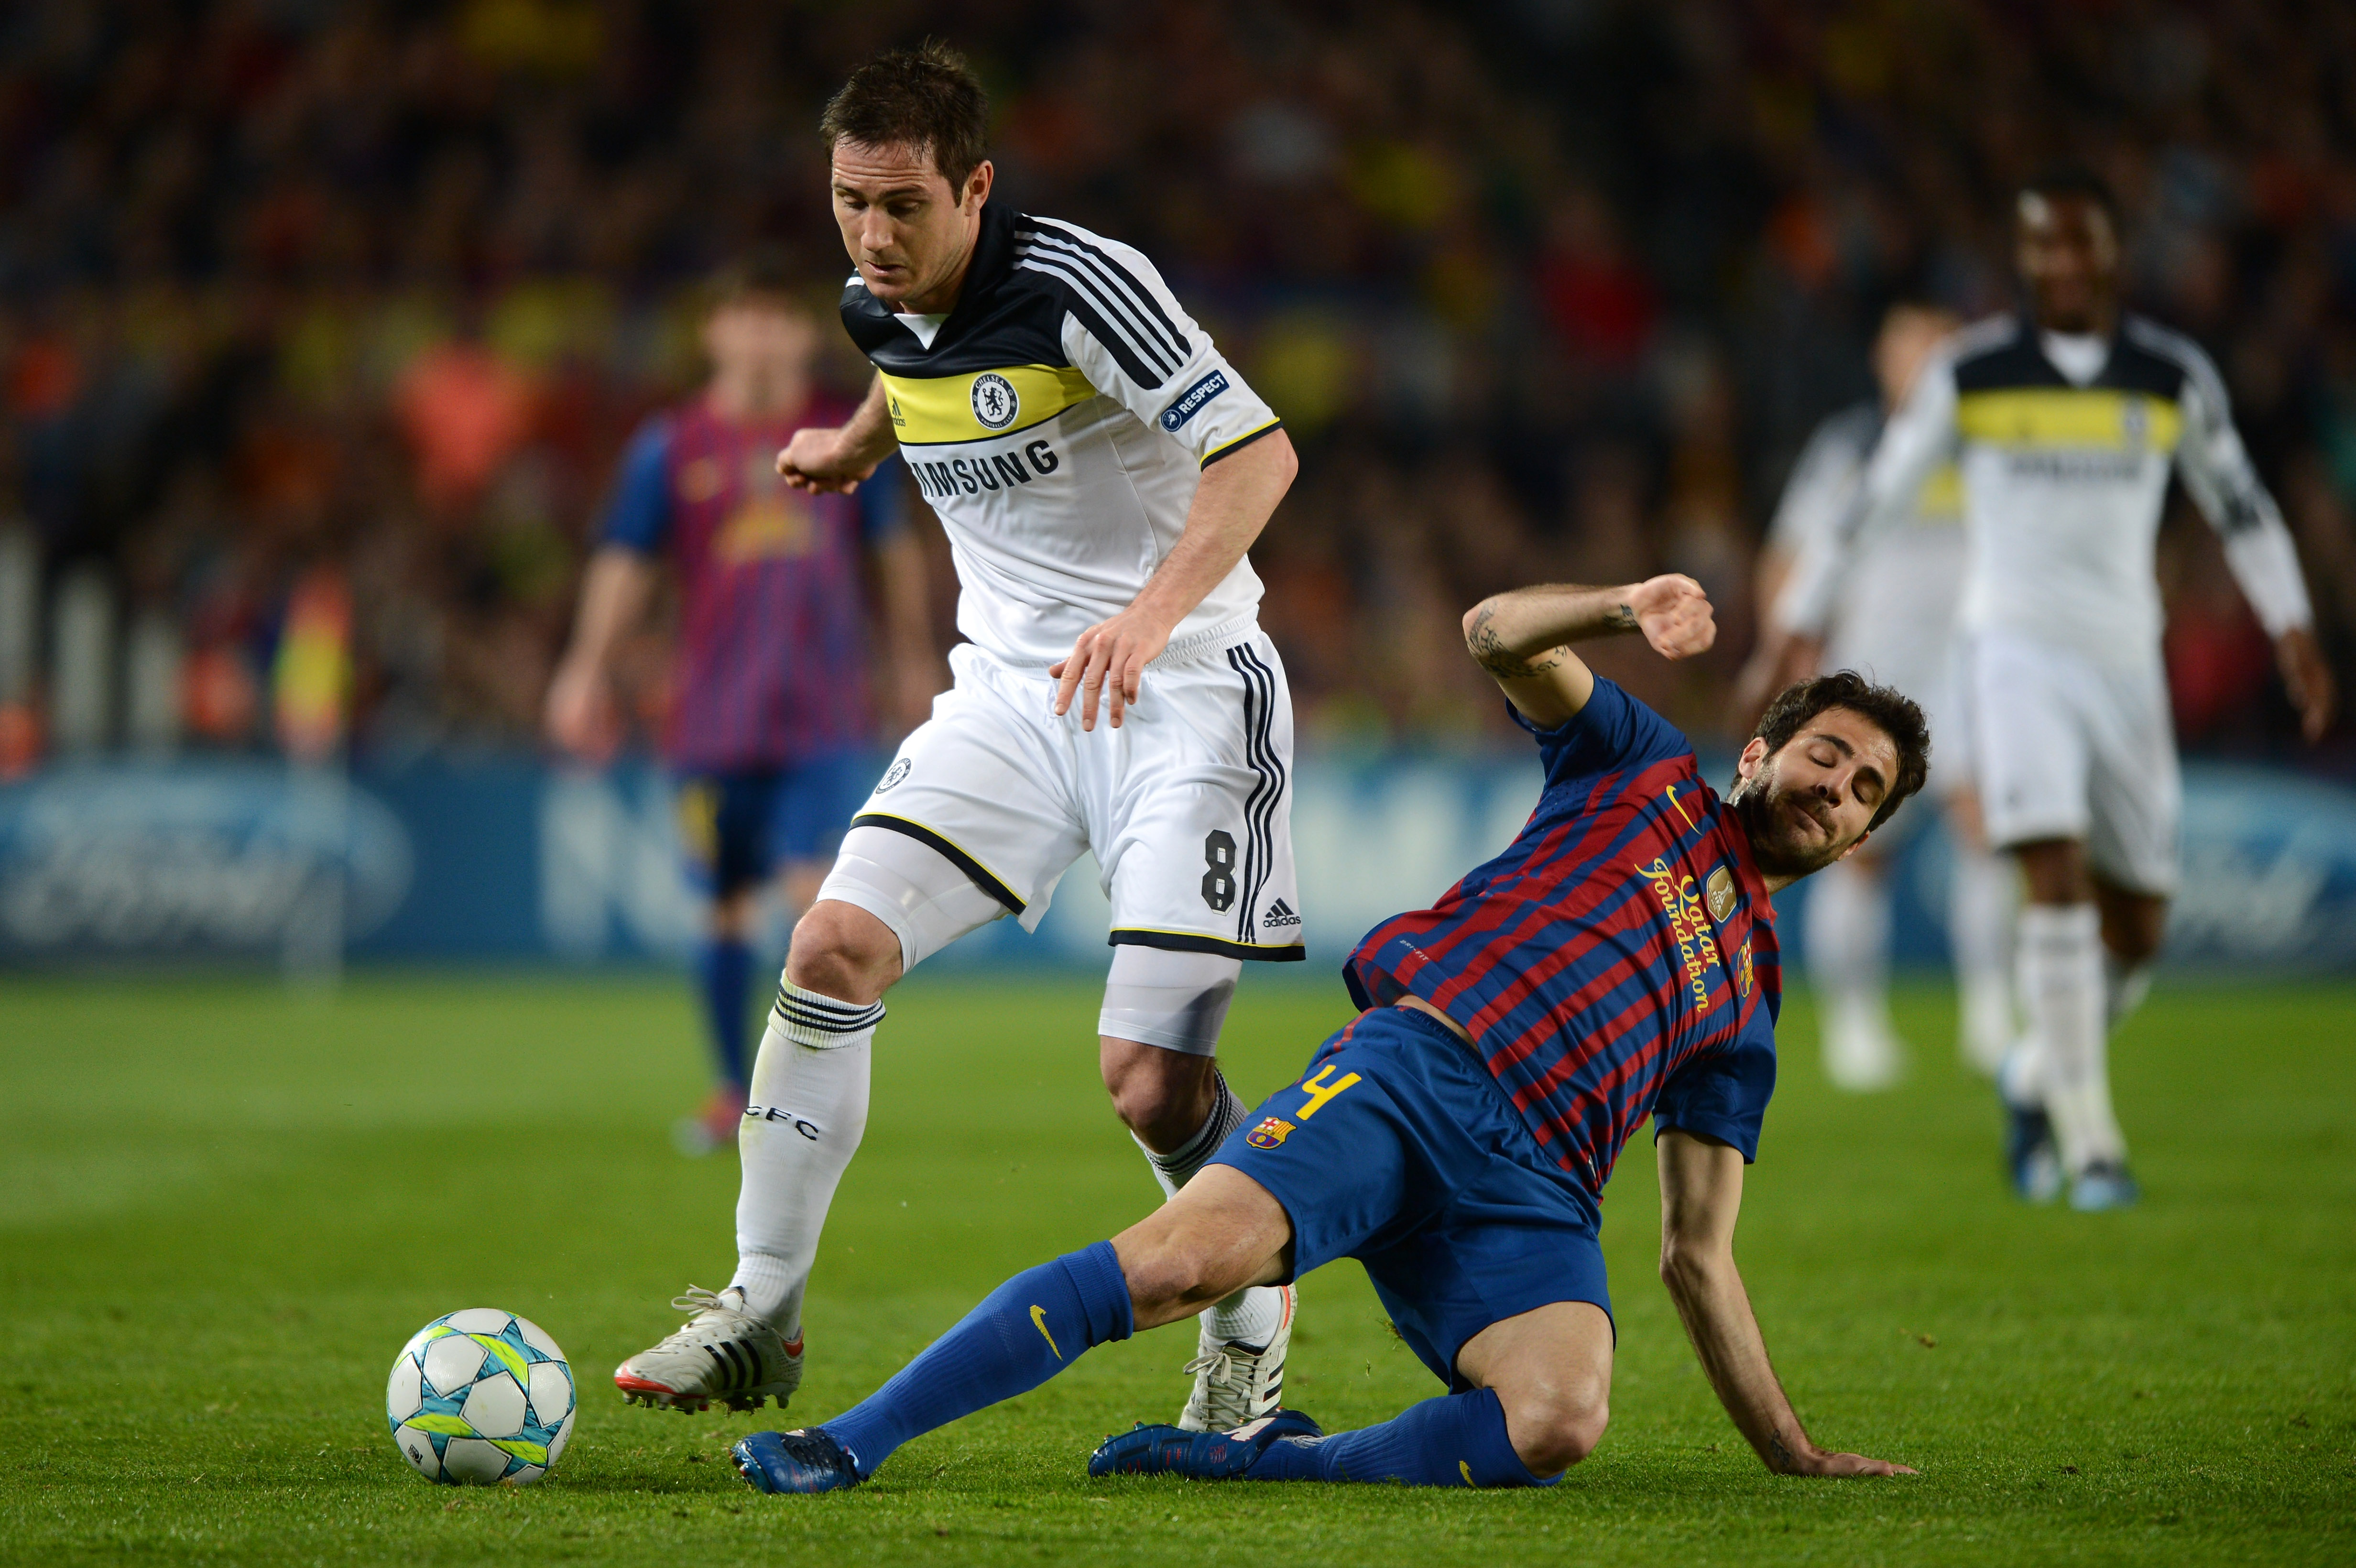 Lampard looks forward to latest (friendly) chapter in Chelsea vs. Barcelona rivalry